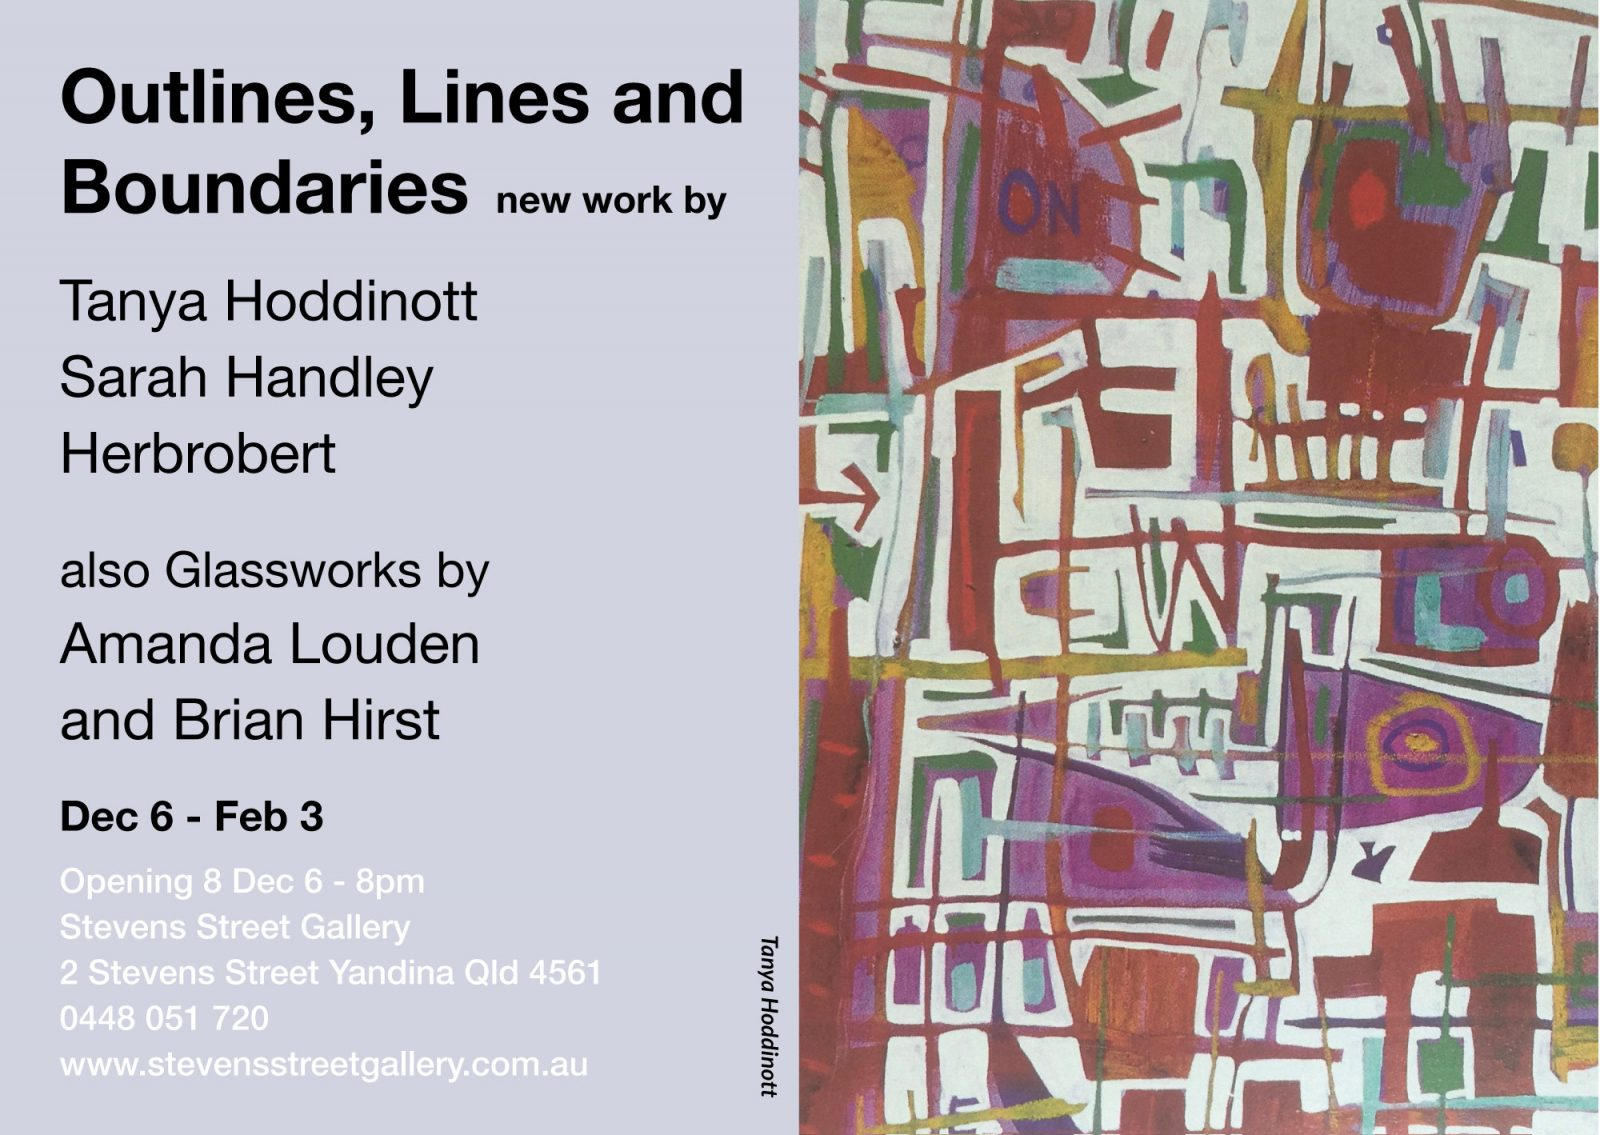 Outlines, Lines and Boundaries exhibition invite.